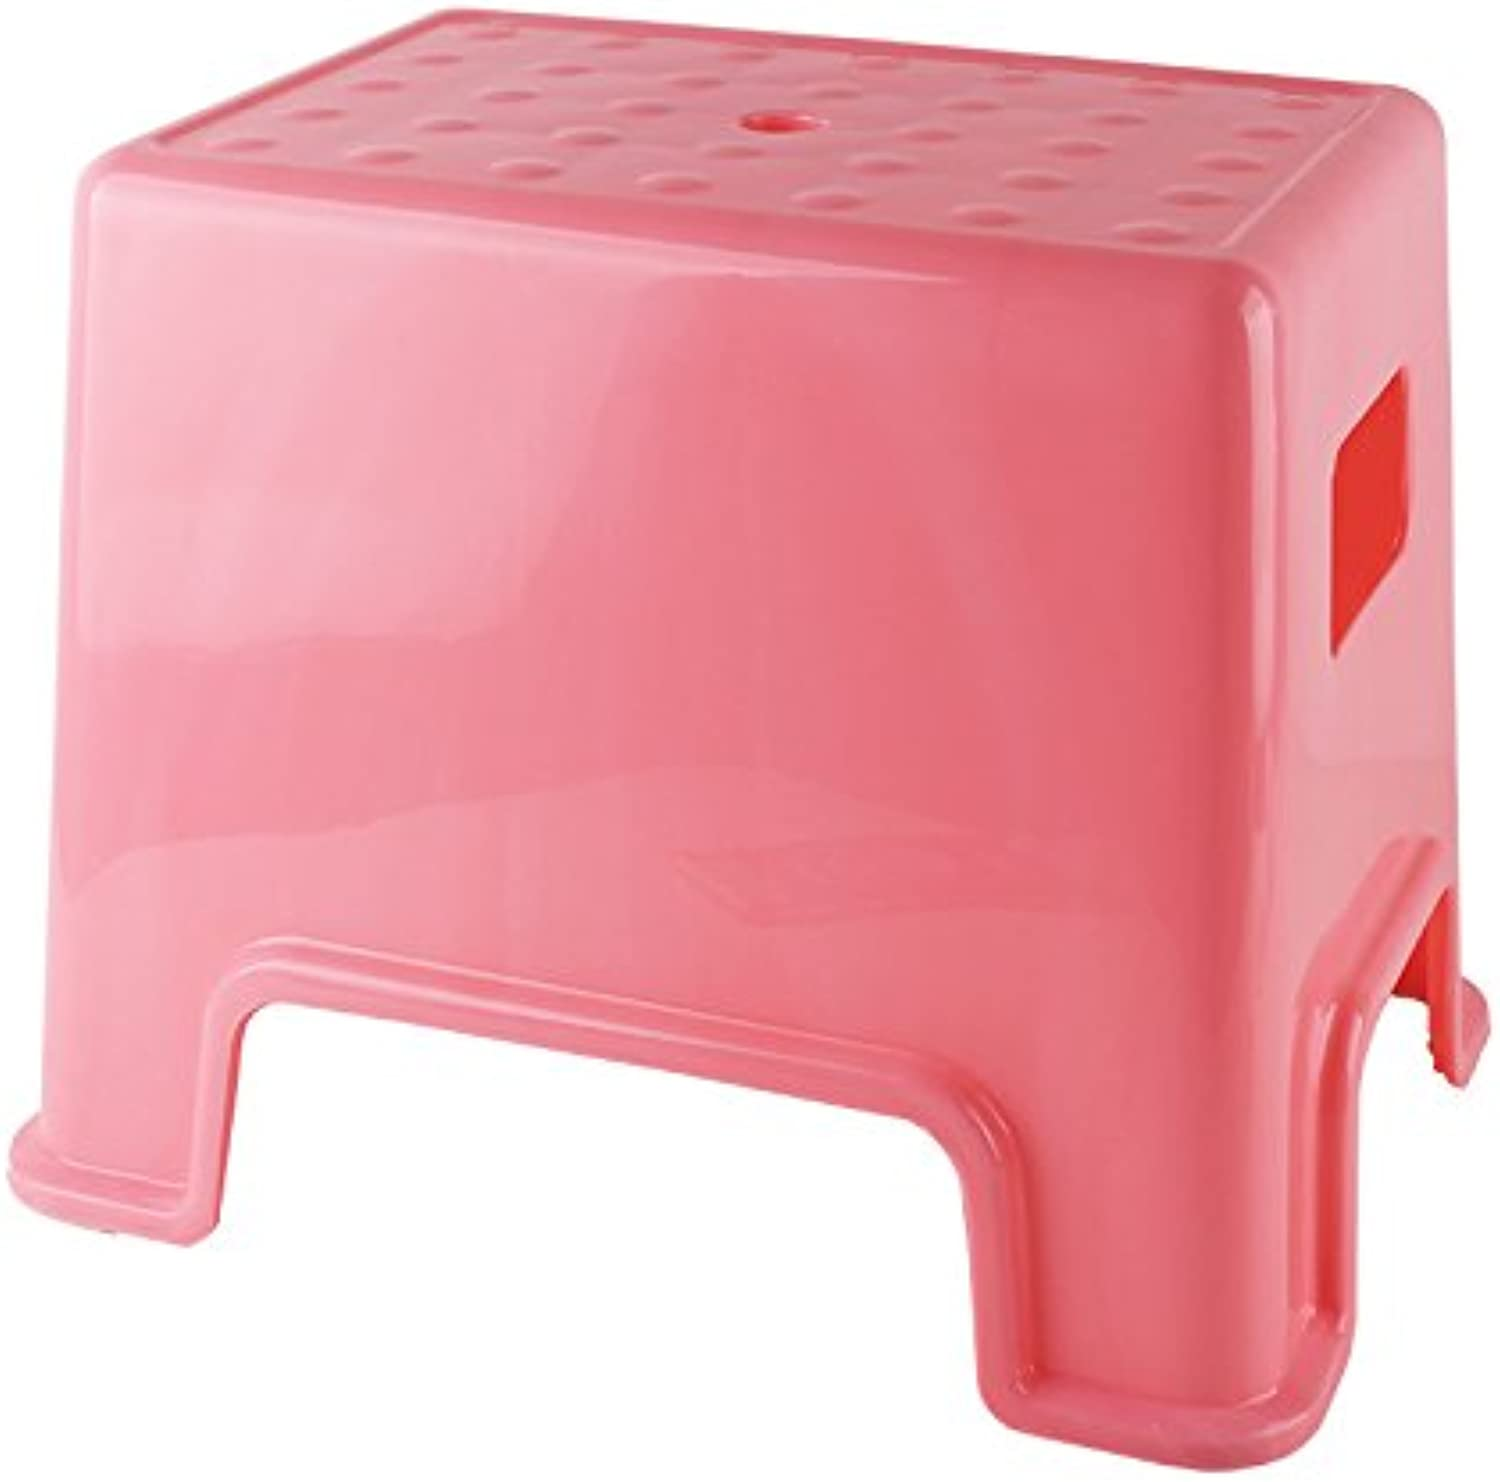 Dana Carrie A plastic stool home thick adult bathroom square bench benches thick low stool in other shoe bench 4PCS, pink ,3222.530CM